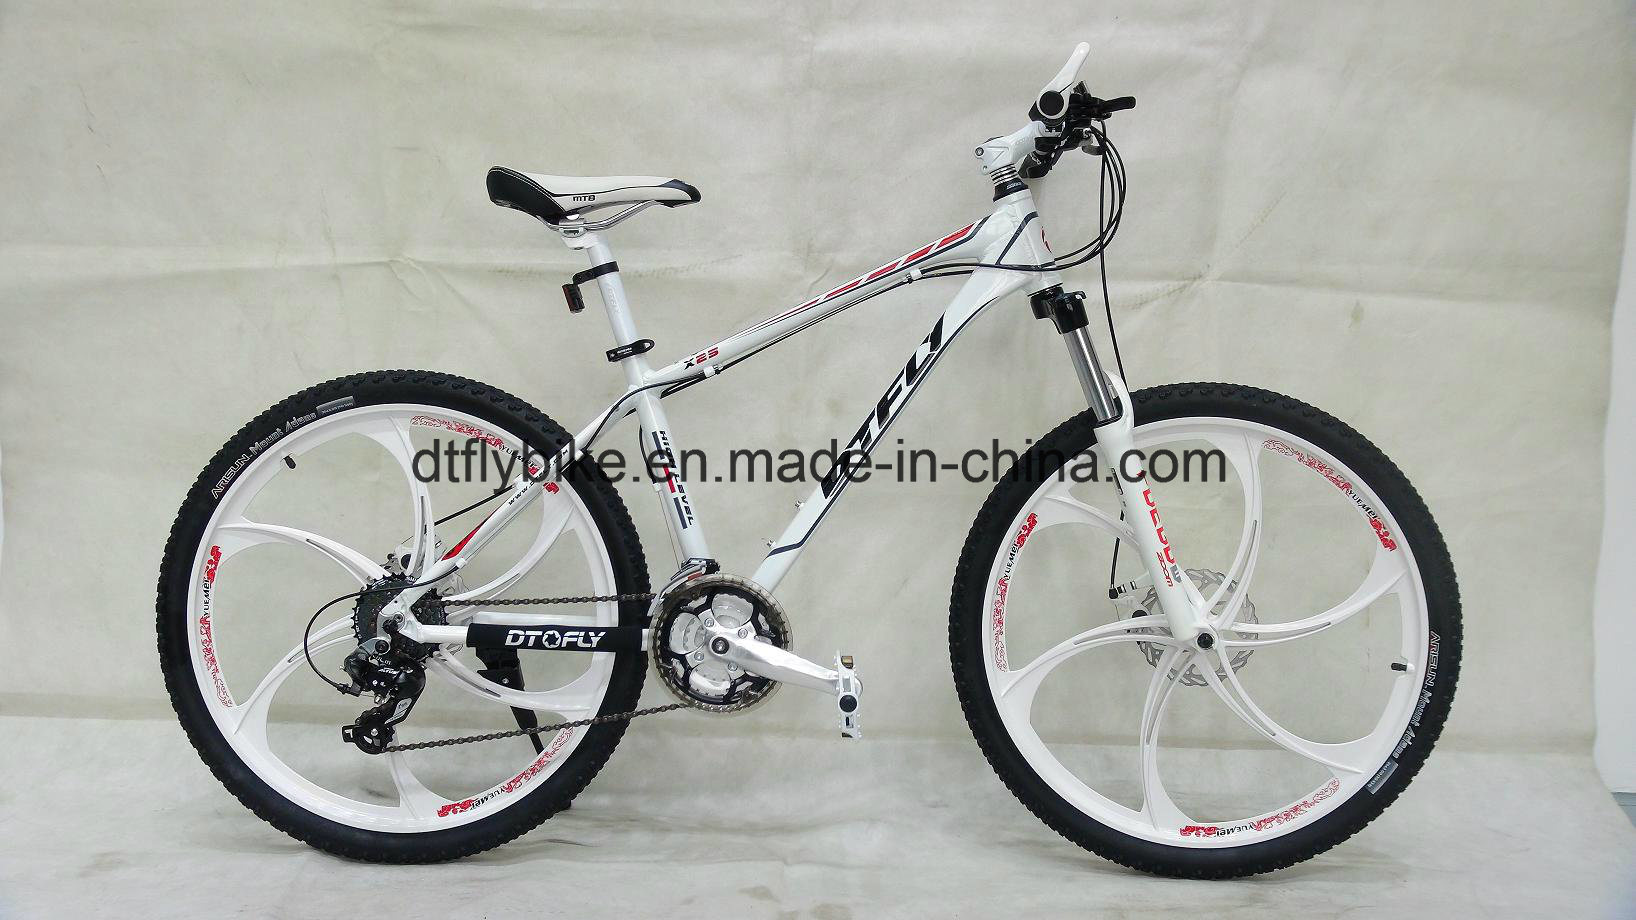 Alloy Frame Mountain Bike, One Piece Wheel Bike,